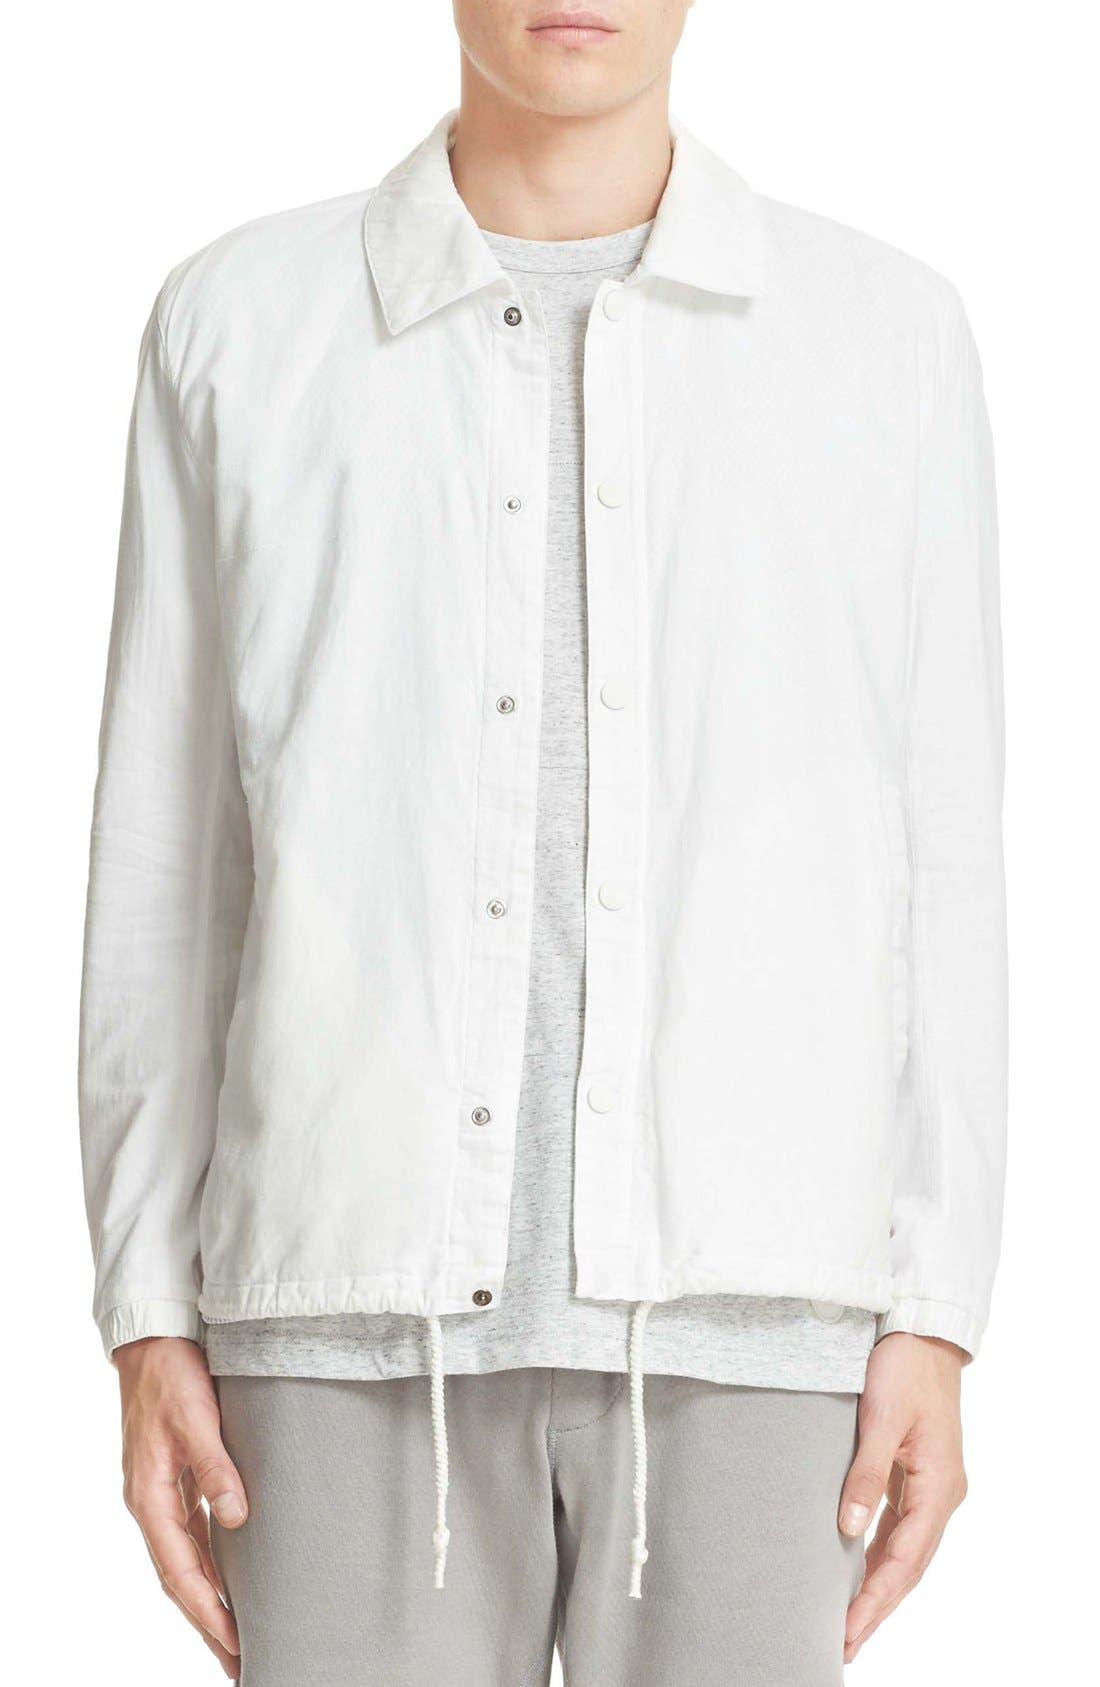 wings + horns x adidas Cotton & Linen Coach Jacket